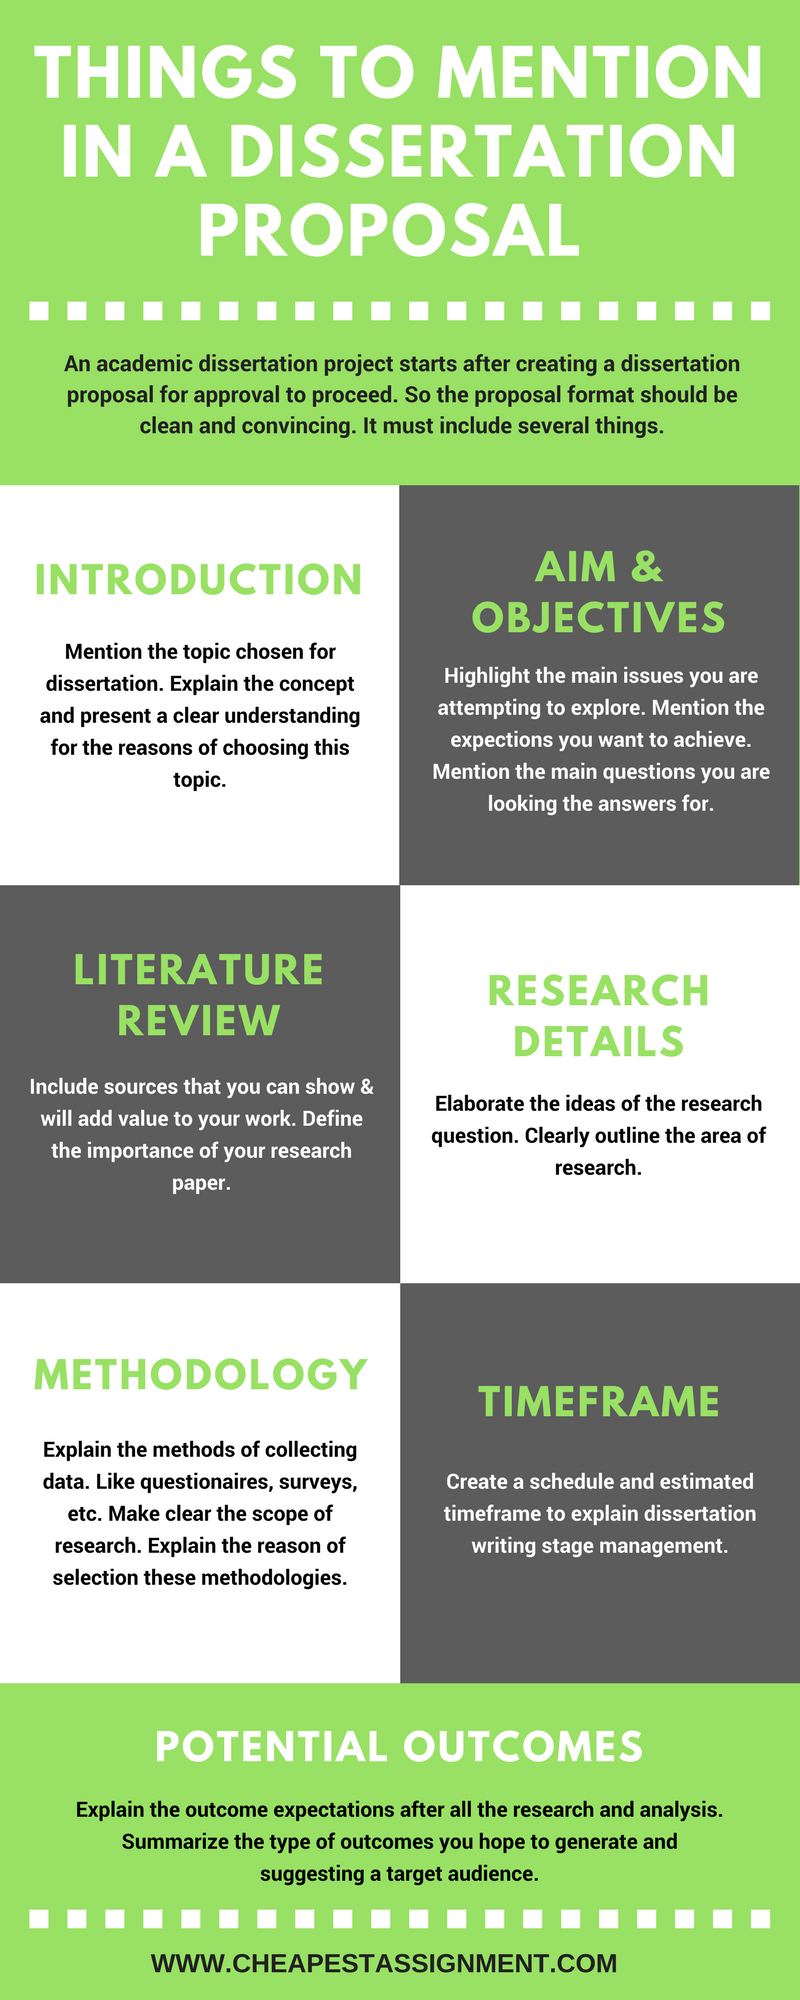 Cheap Dissertation And Thesi Writing Help Service In Uk Australia Academic Motivation How To Do Research